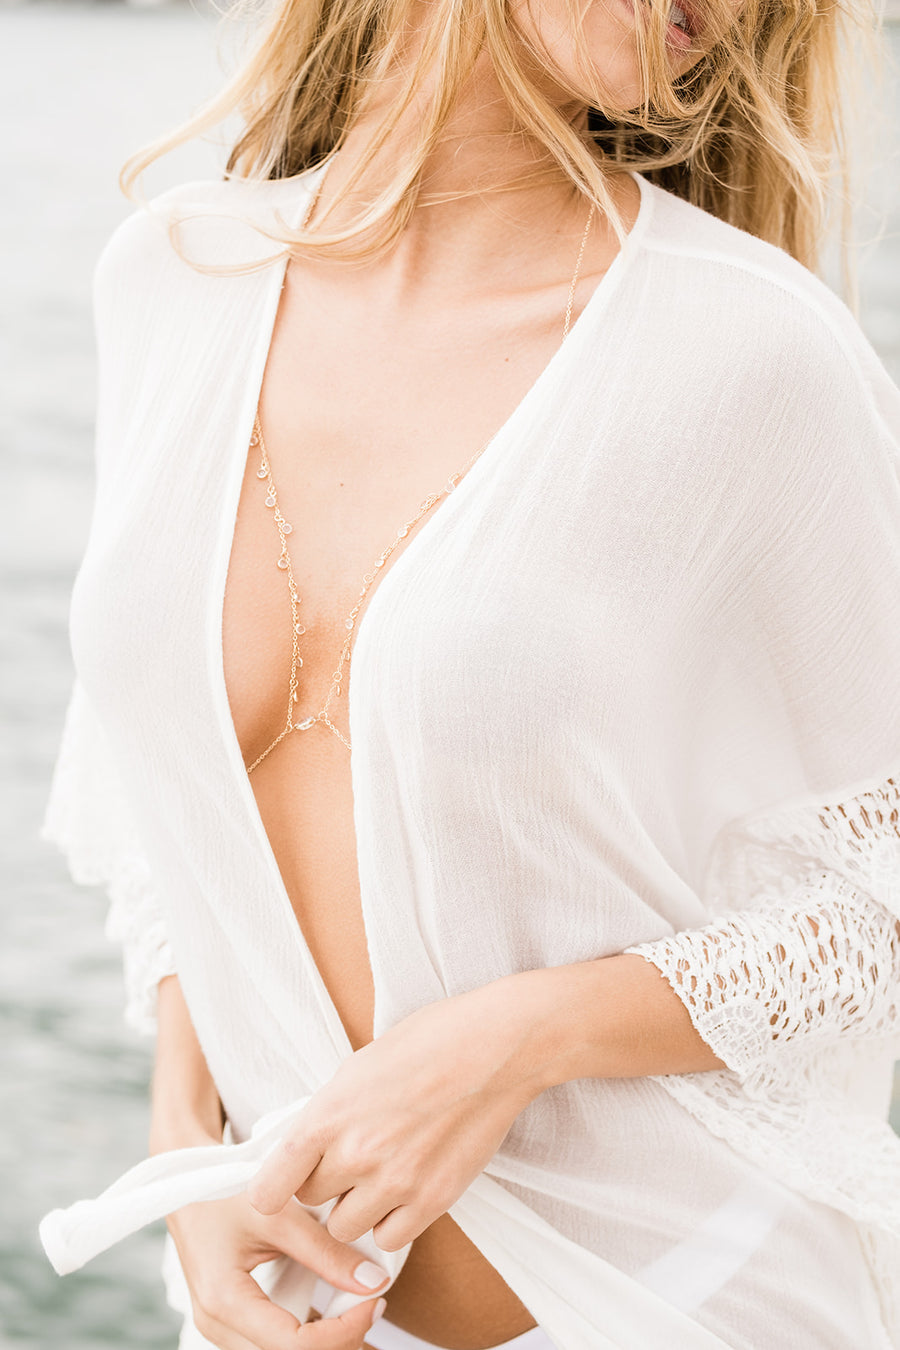 Bikini Body Gold Chain - The Beach Bride by Chic Parisien, a destination for beach weddings, bachelorettes and honeymoons